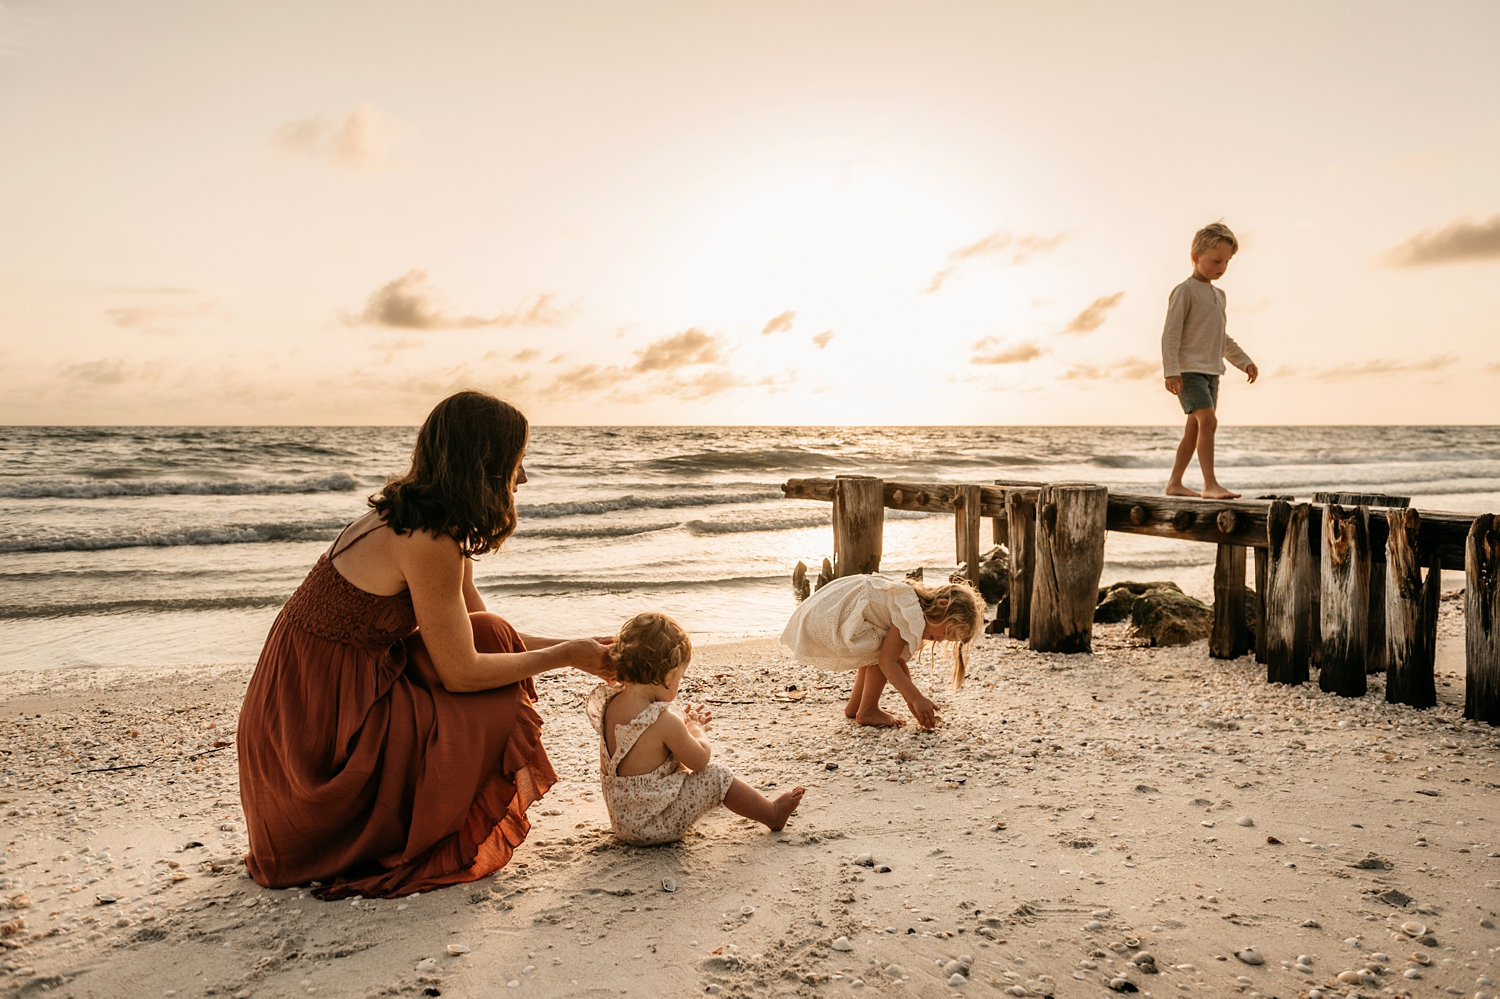 simple family beach portraits, mother and children playing at the beach at sunset, Rya Duncklee Photography